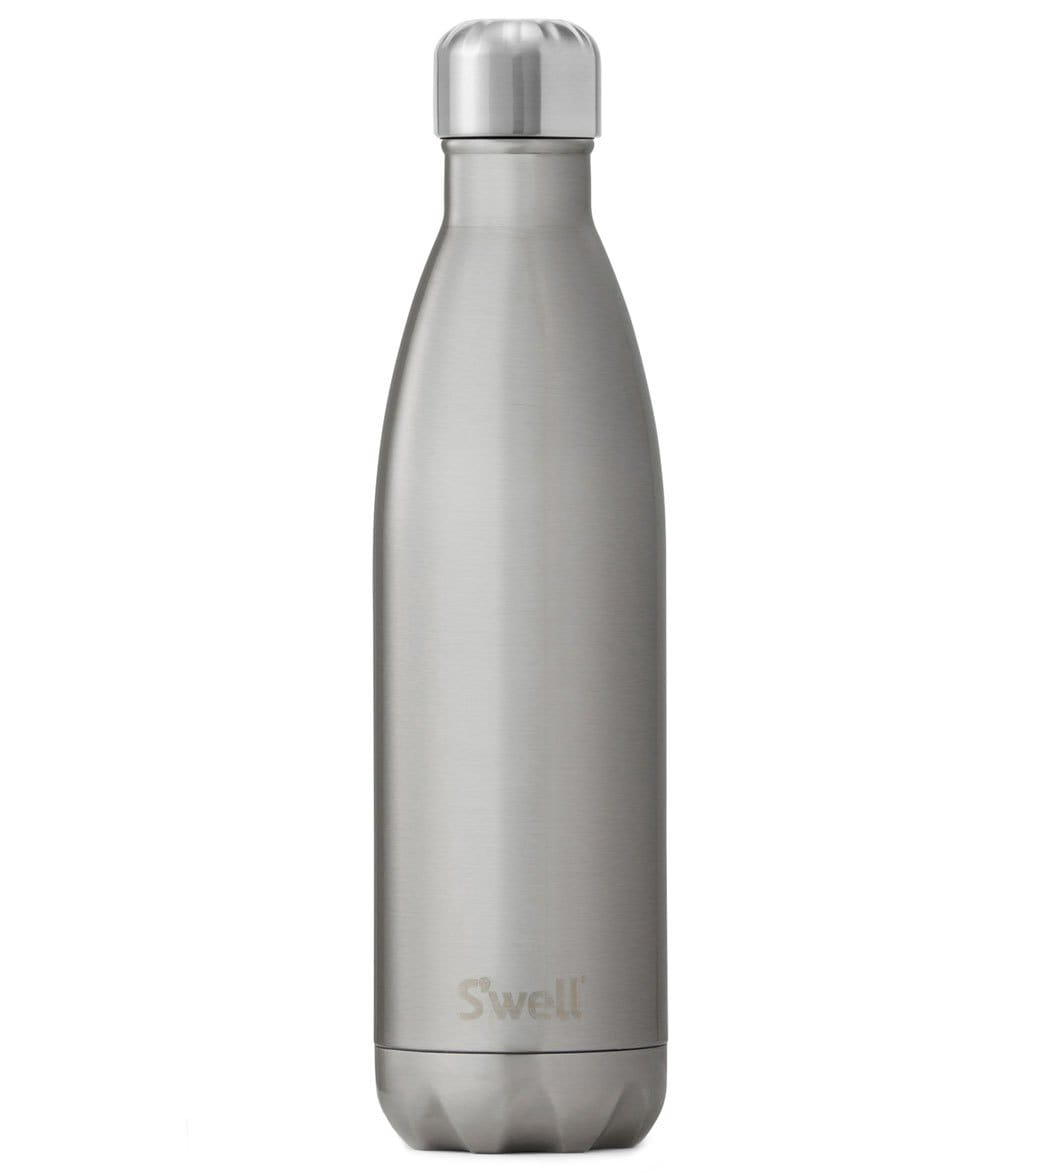 bca57826e8a S well Silver Lining 25oz Stainless Steel Water Bottle at YogaOutlet.com